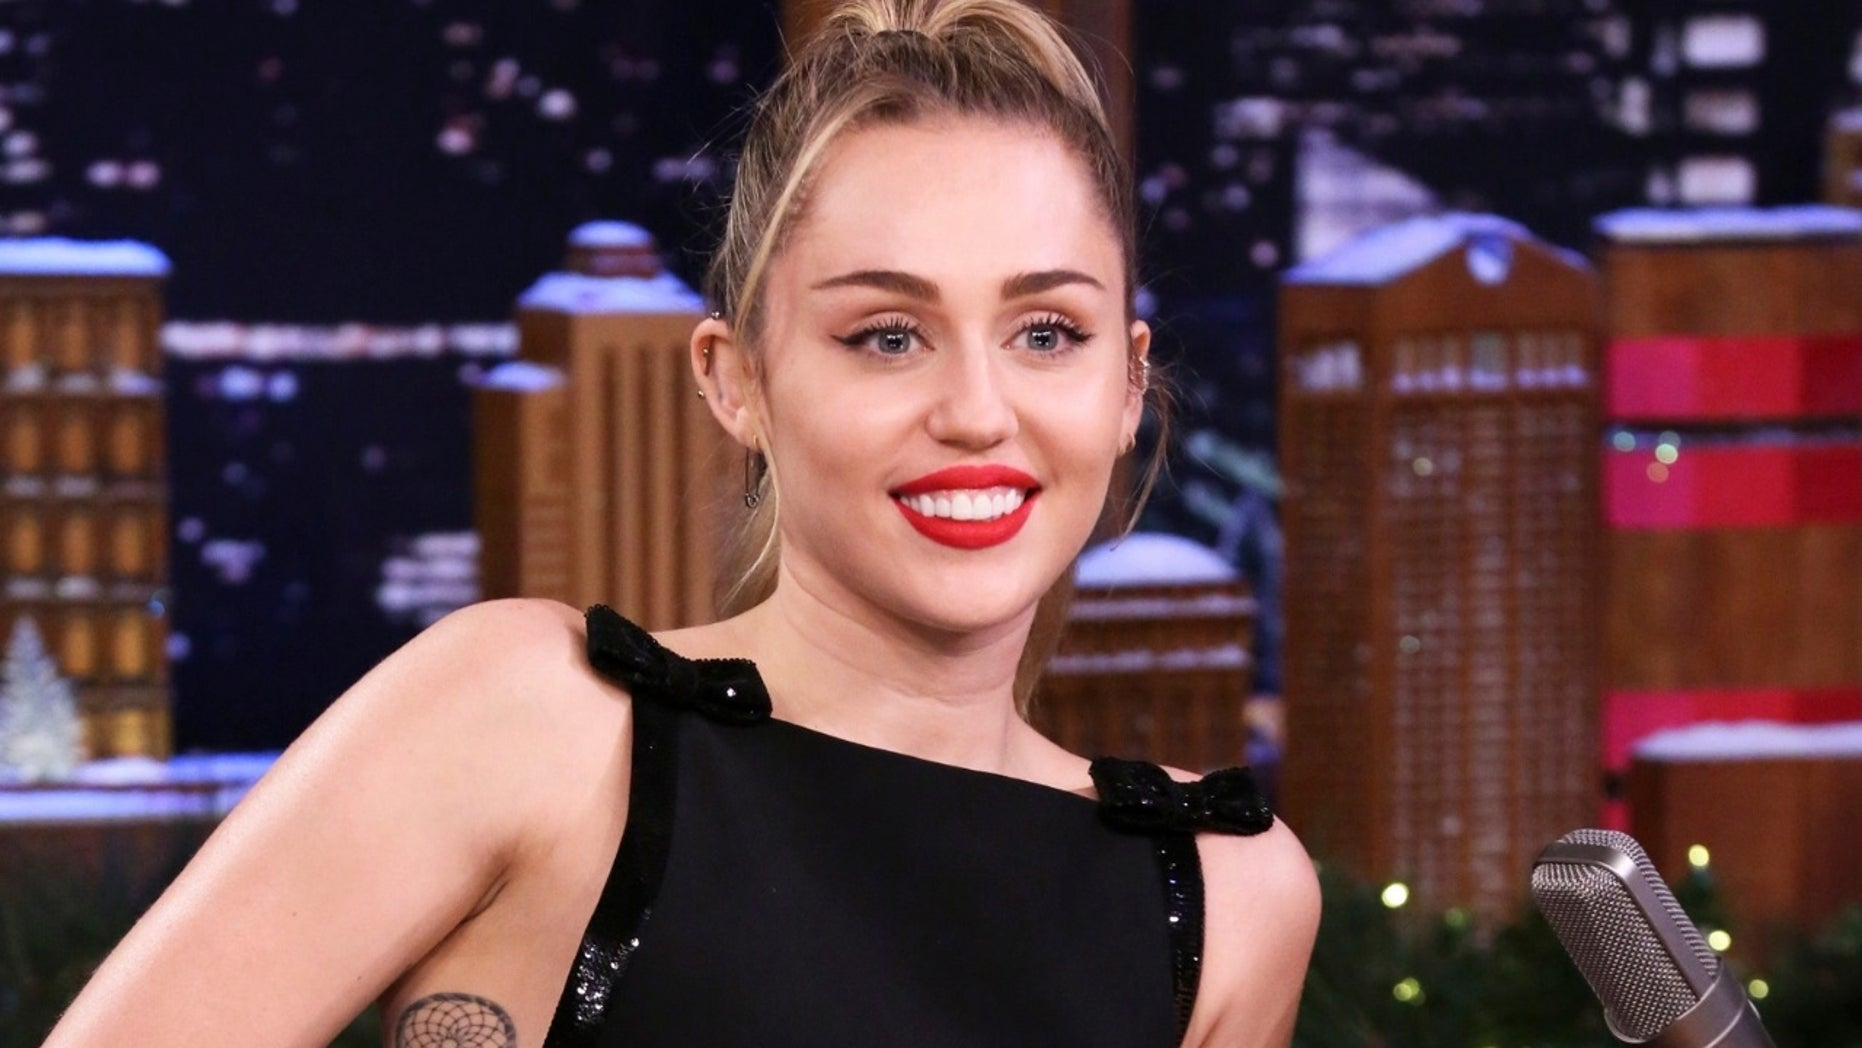 Miley Cyrus Puts Her Own Spin on Classic Christmas Tune 'Santa Baby'